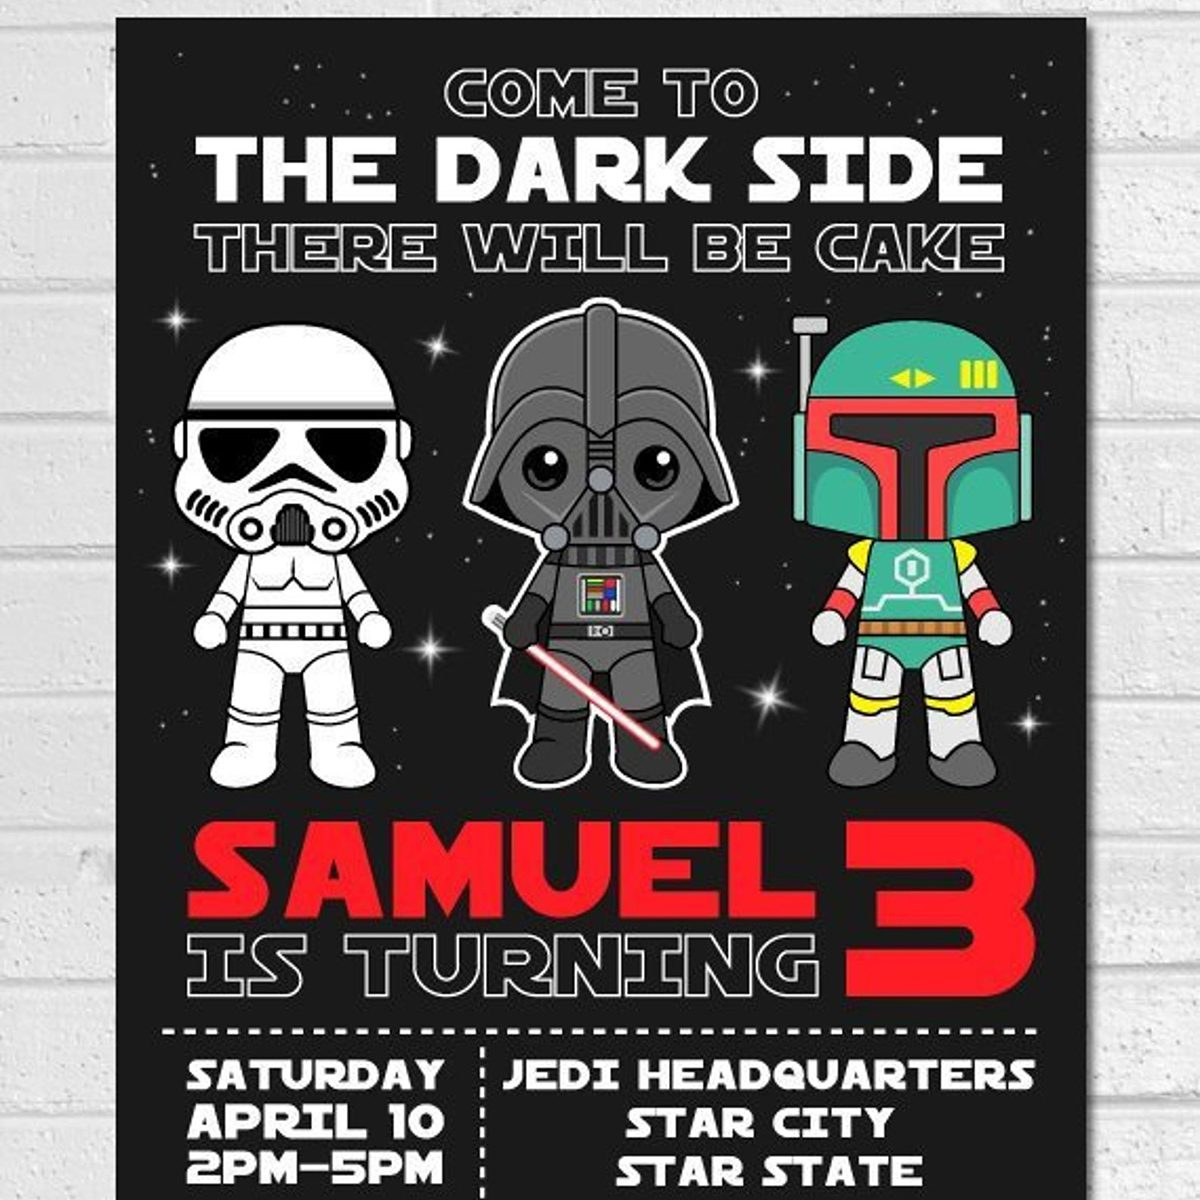 Star Wars Invitation, Star Wars Birthday, Star Wars, Star Wars Printable, Star Wars Card, Star Wars Invite Party, Darth Vader Invite